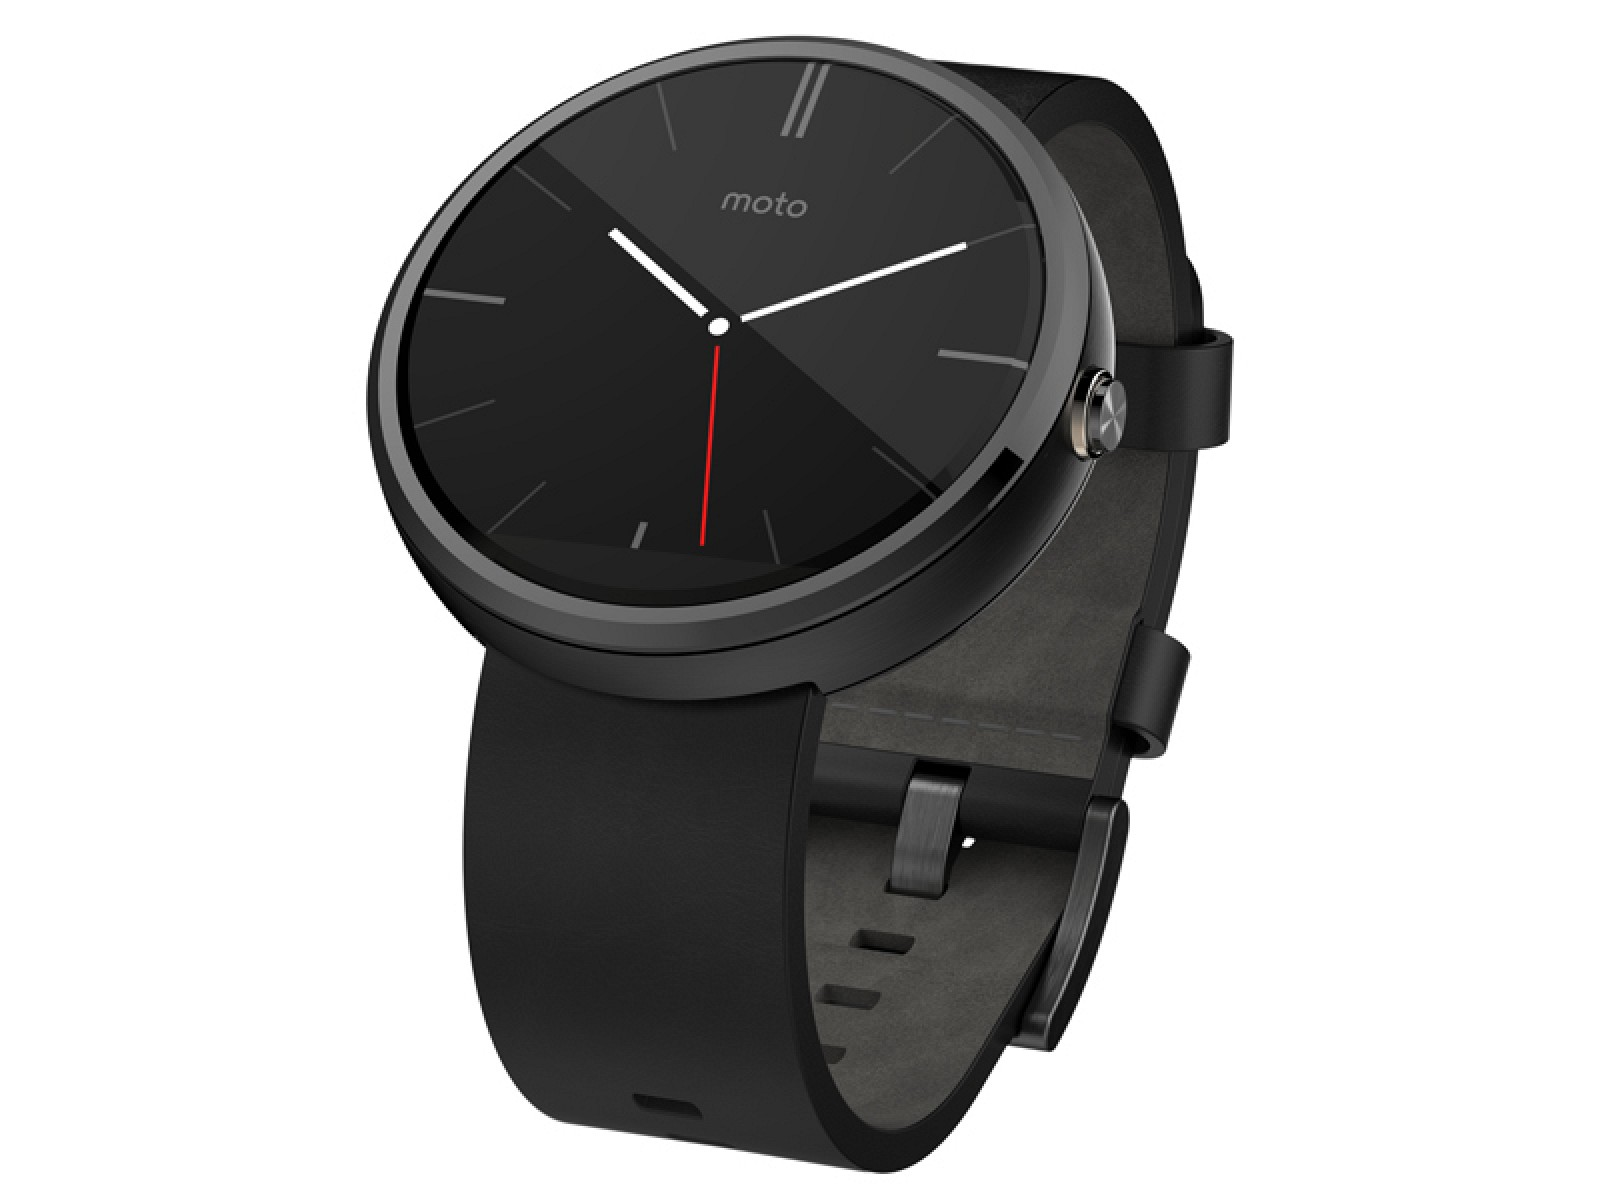 Motorola Launches $249 Moto 360 Smartwatch Featuring ...